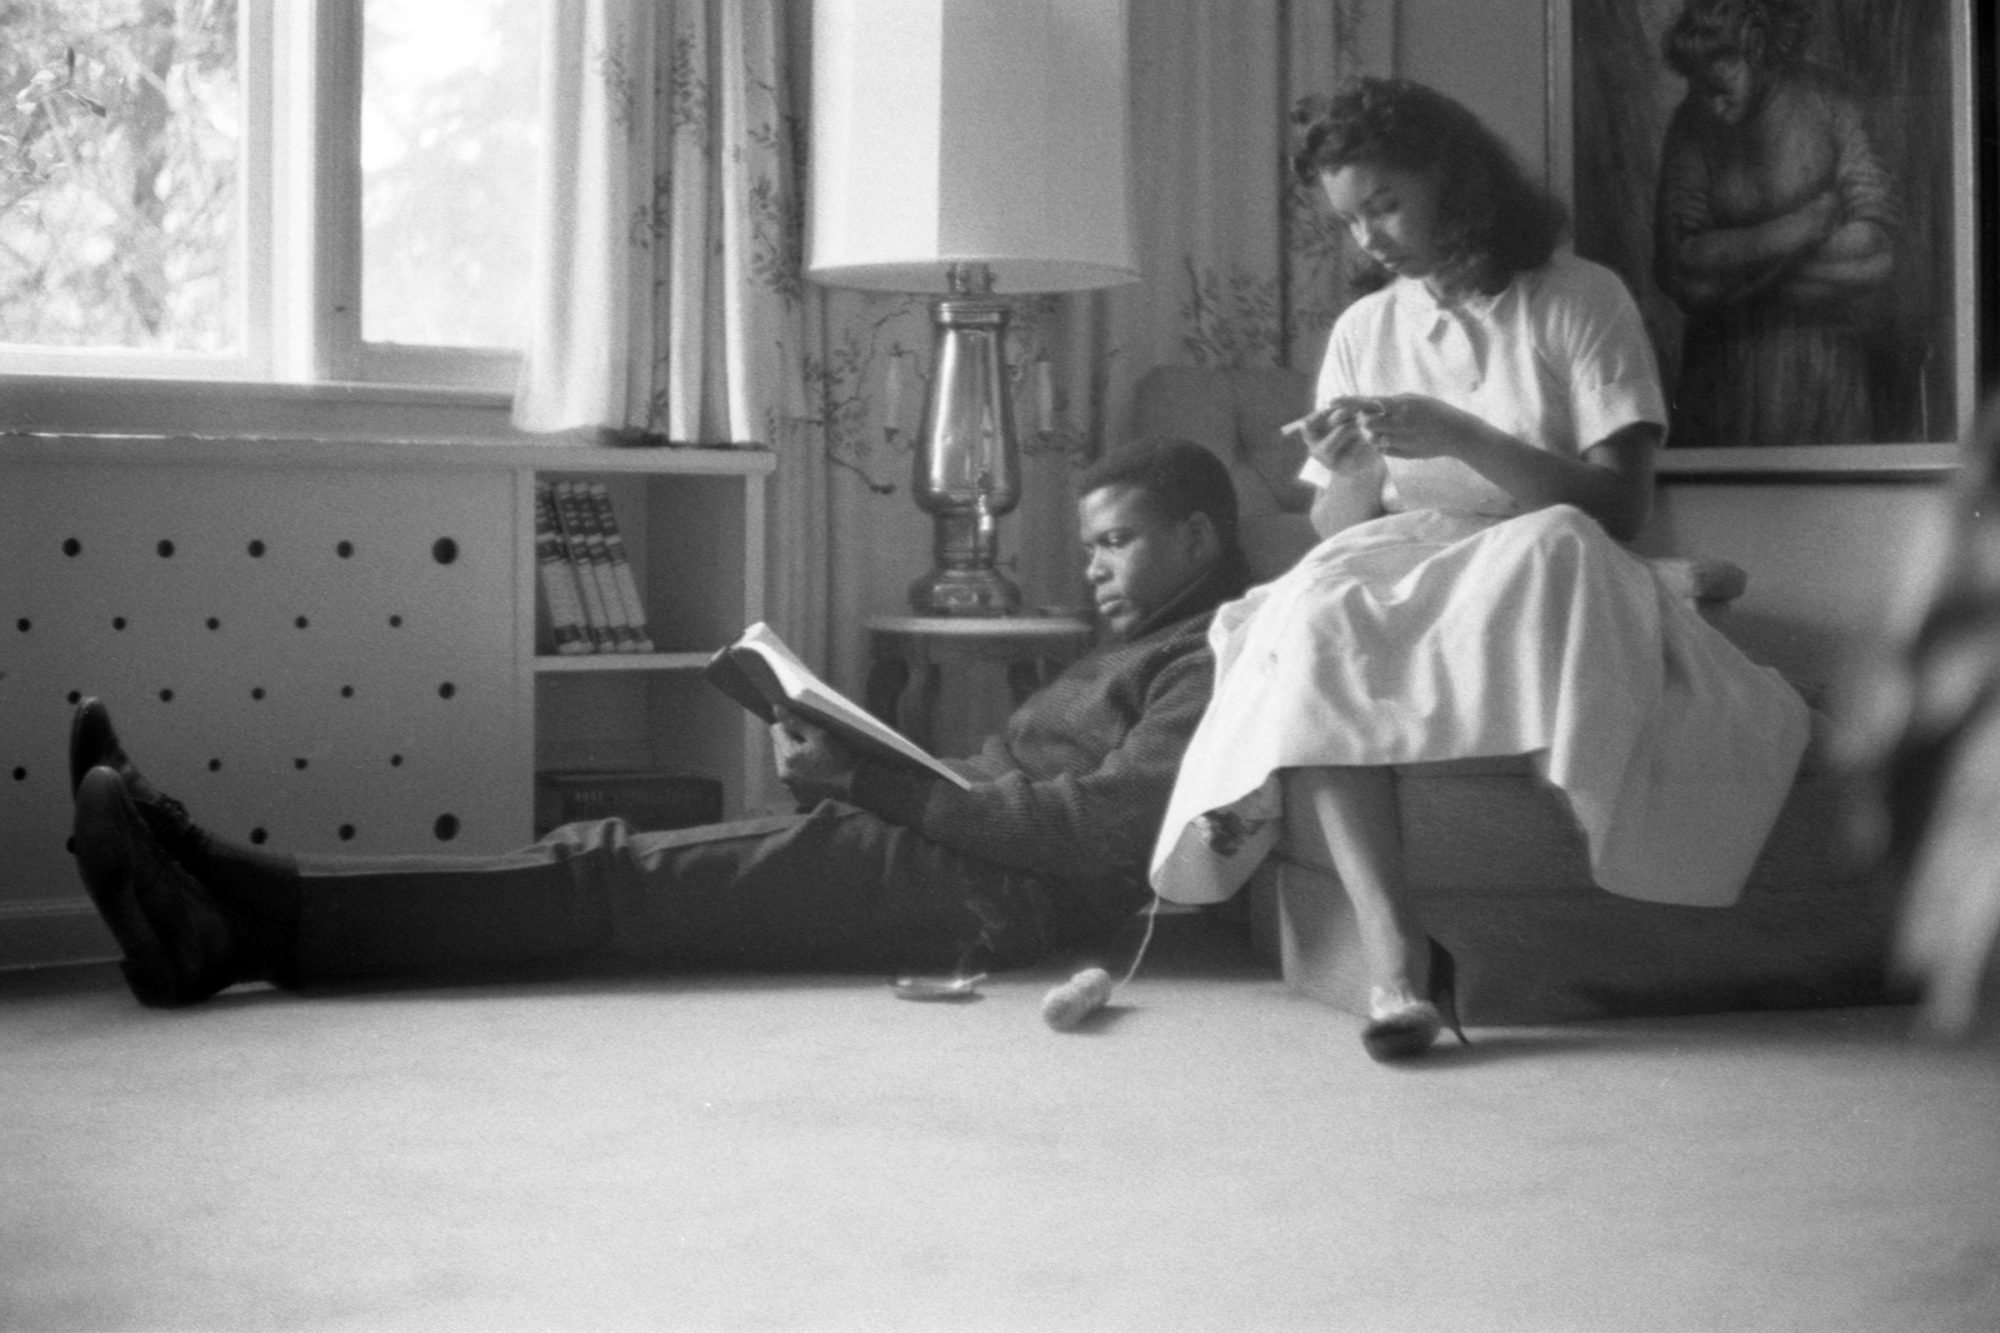 Sidney Poitier and his wife, Juanita Hardy, as they relax at home together, New York, New York